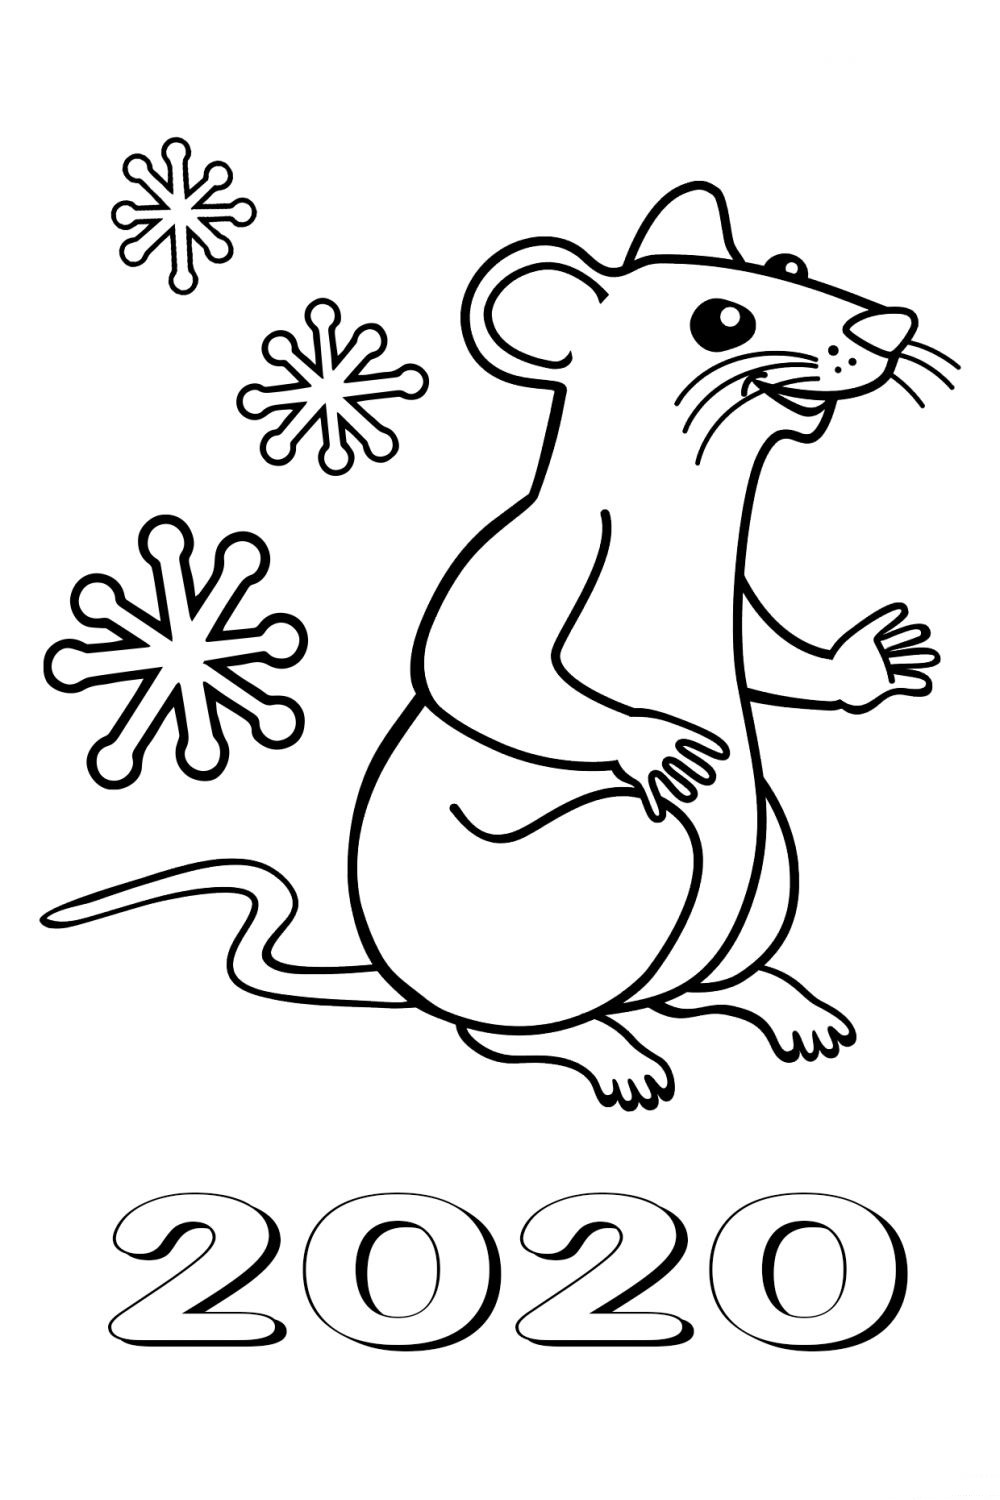 coloring book day 2020 national crayon day 2020 coloring pages on the art day 2020 book coloring